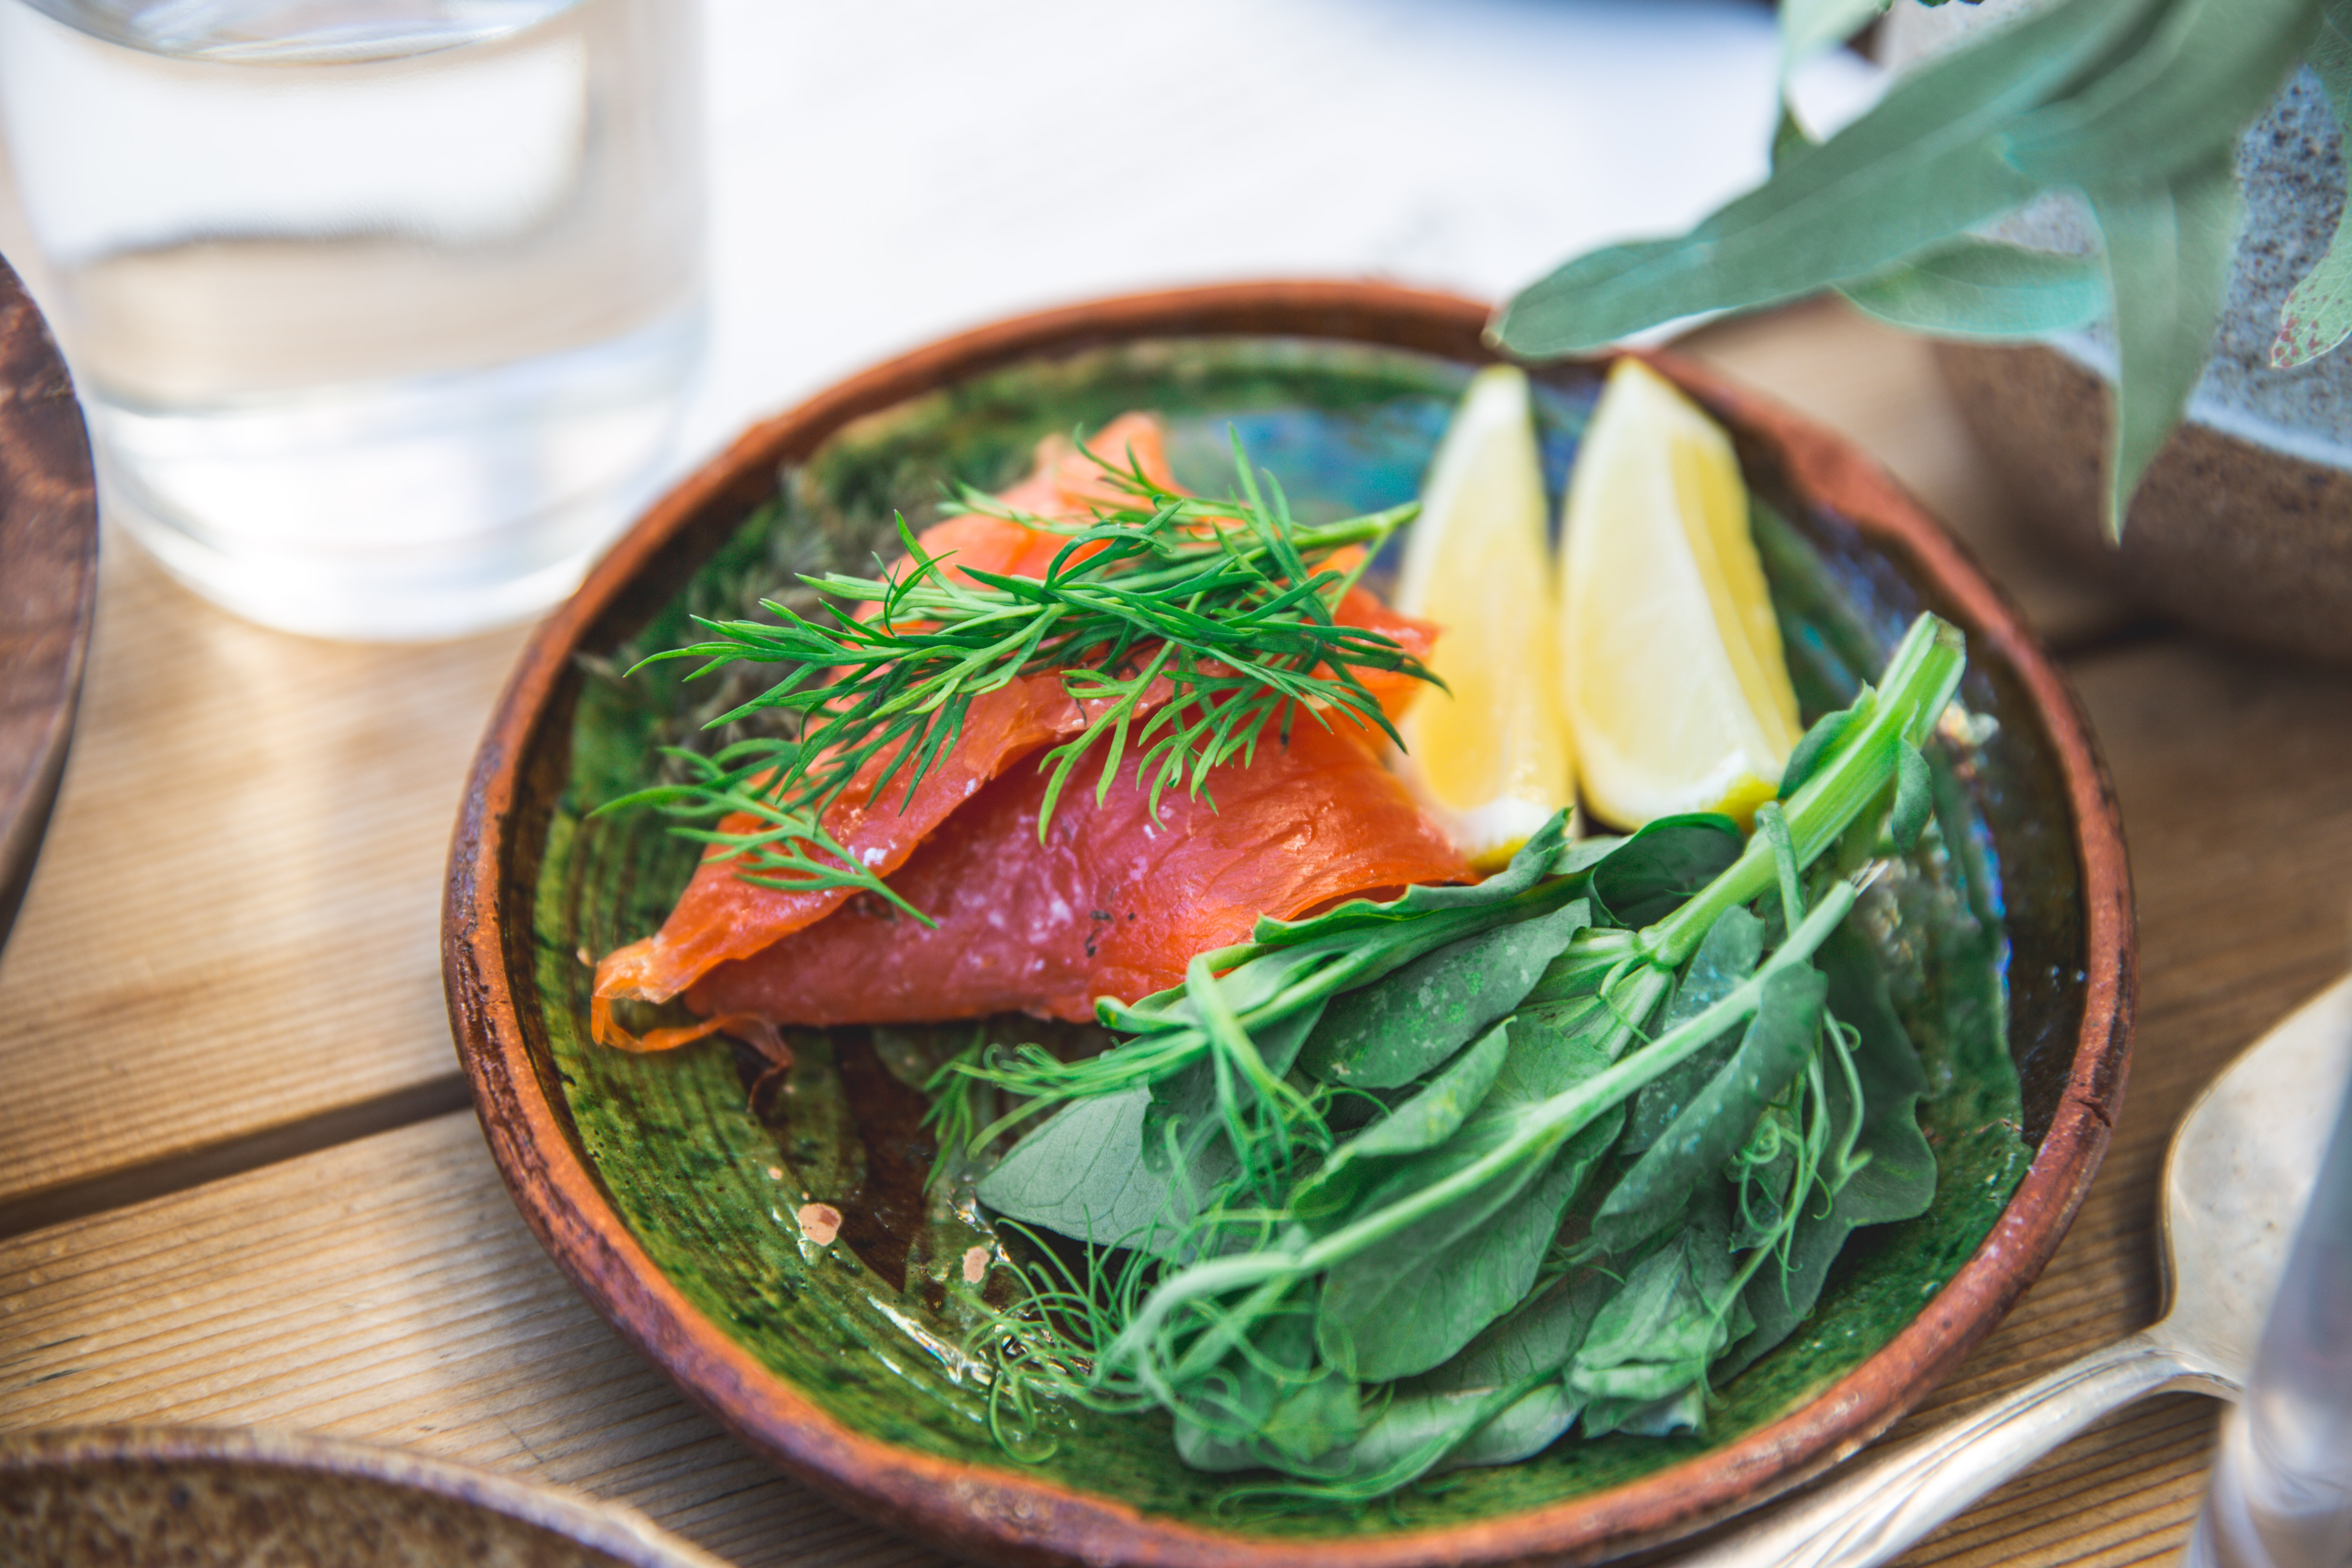 Salmon with green vegetables.